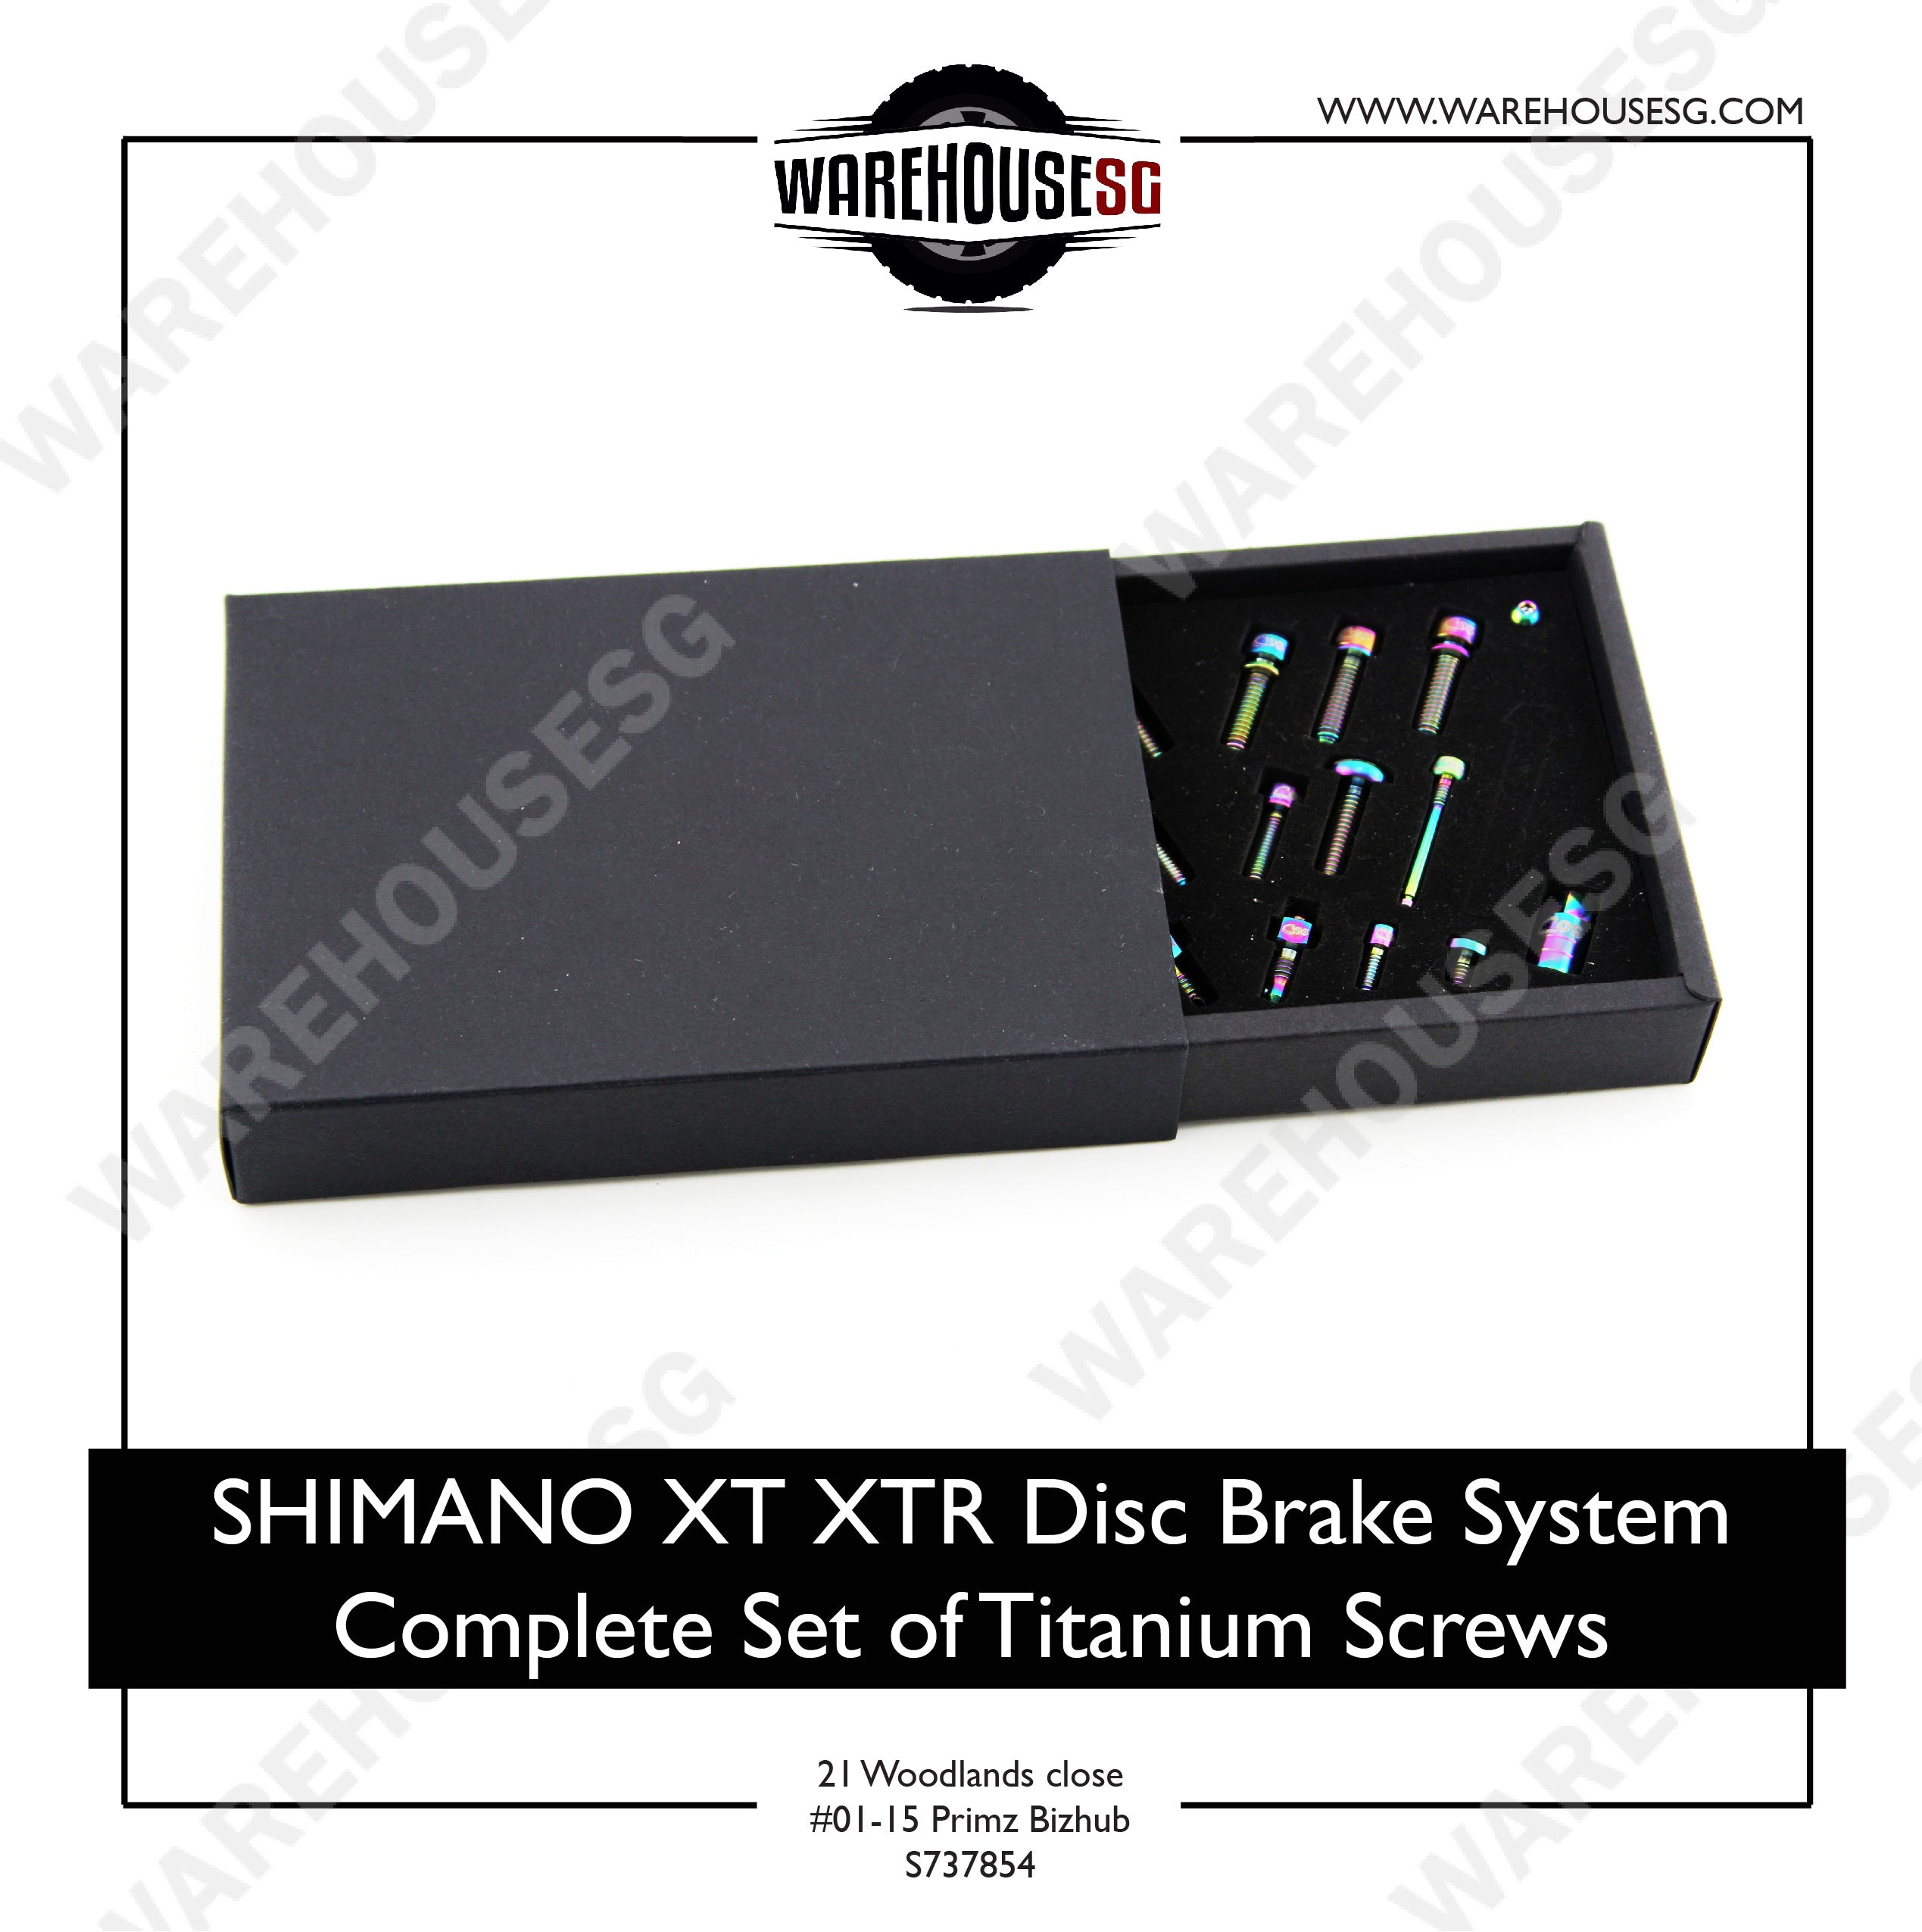 SHIMANO XT XTR Disc Brake System Complete Set of Titanium Screws